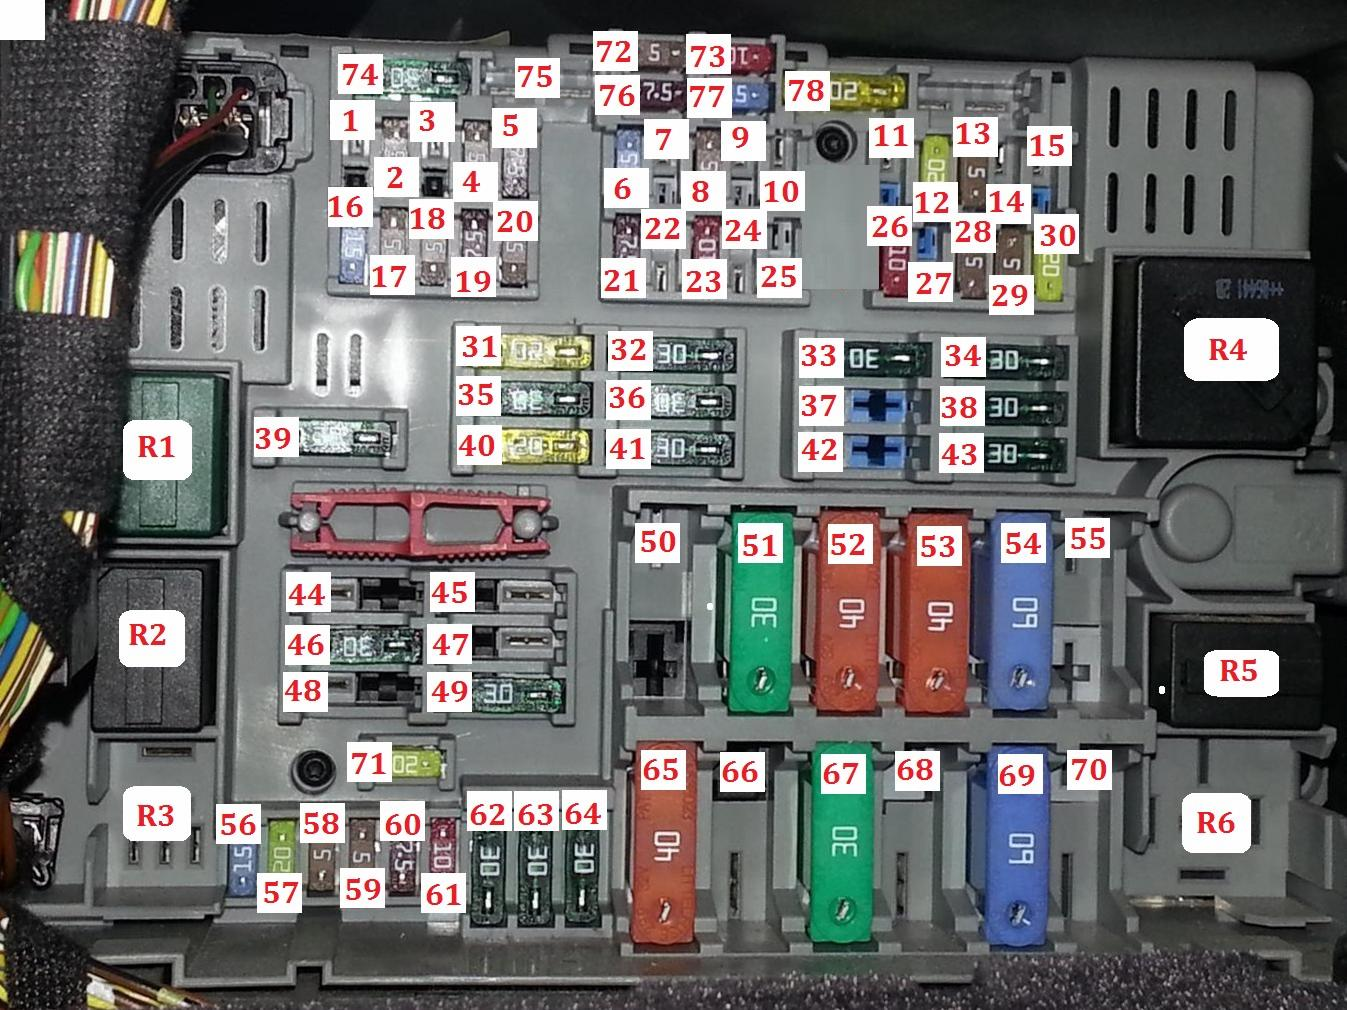 2008 328xi Fuse Box Auto Electrical Wiring Diagram 2013 Bmw